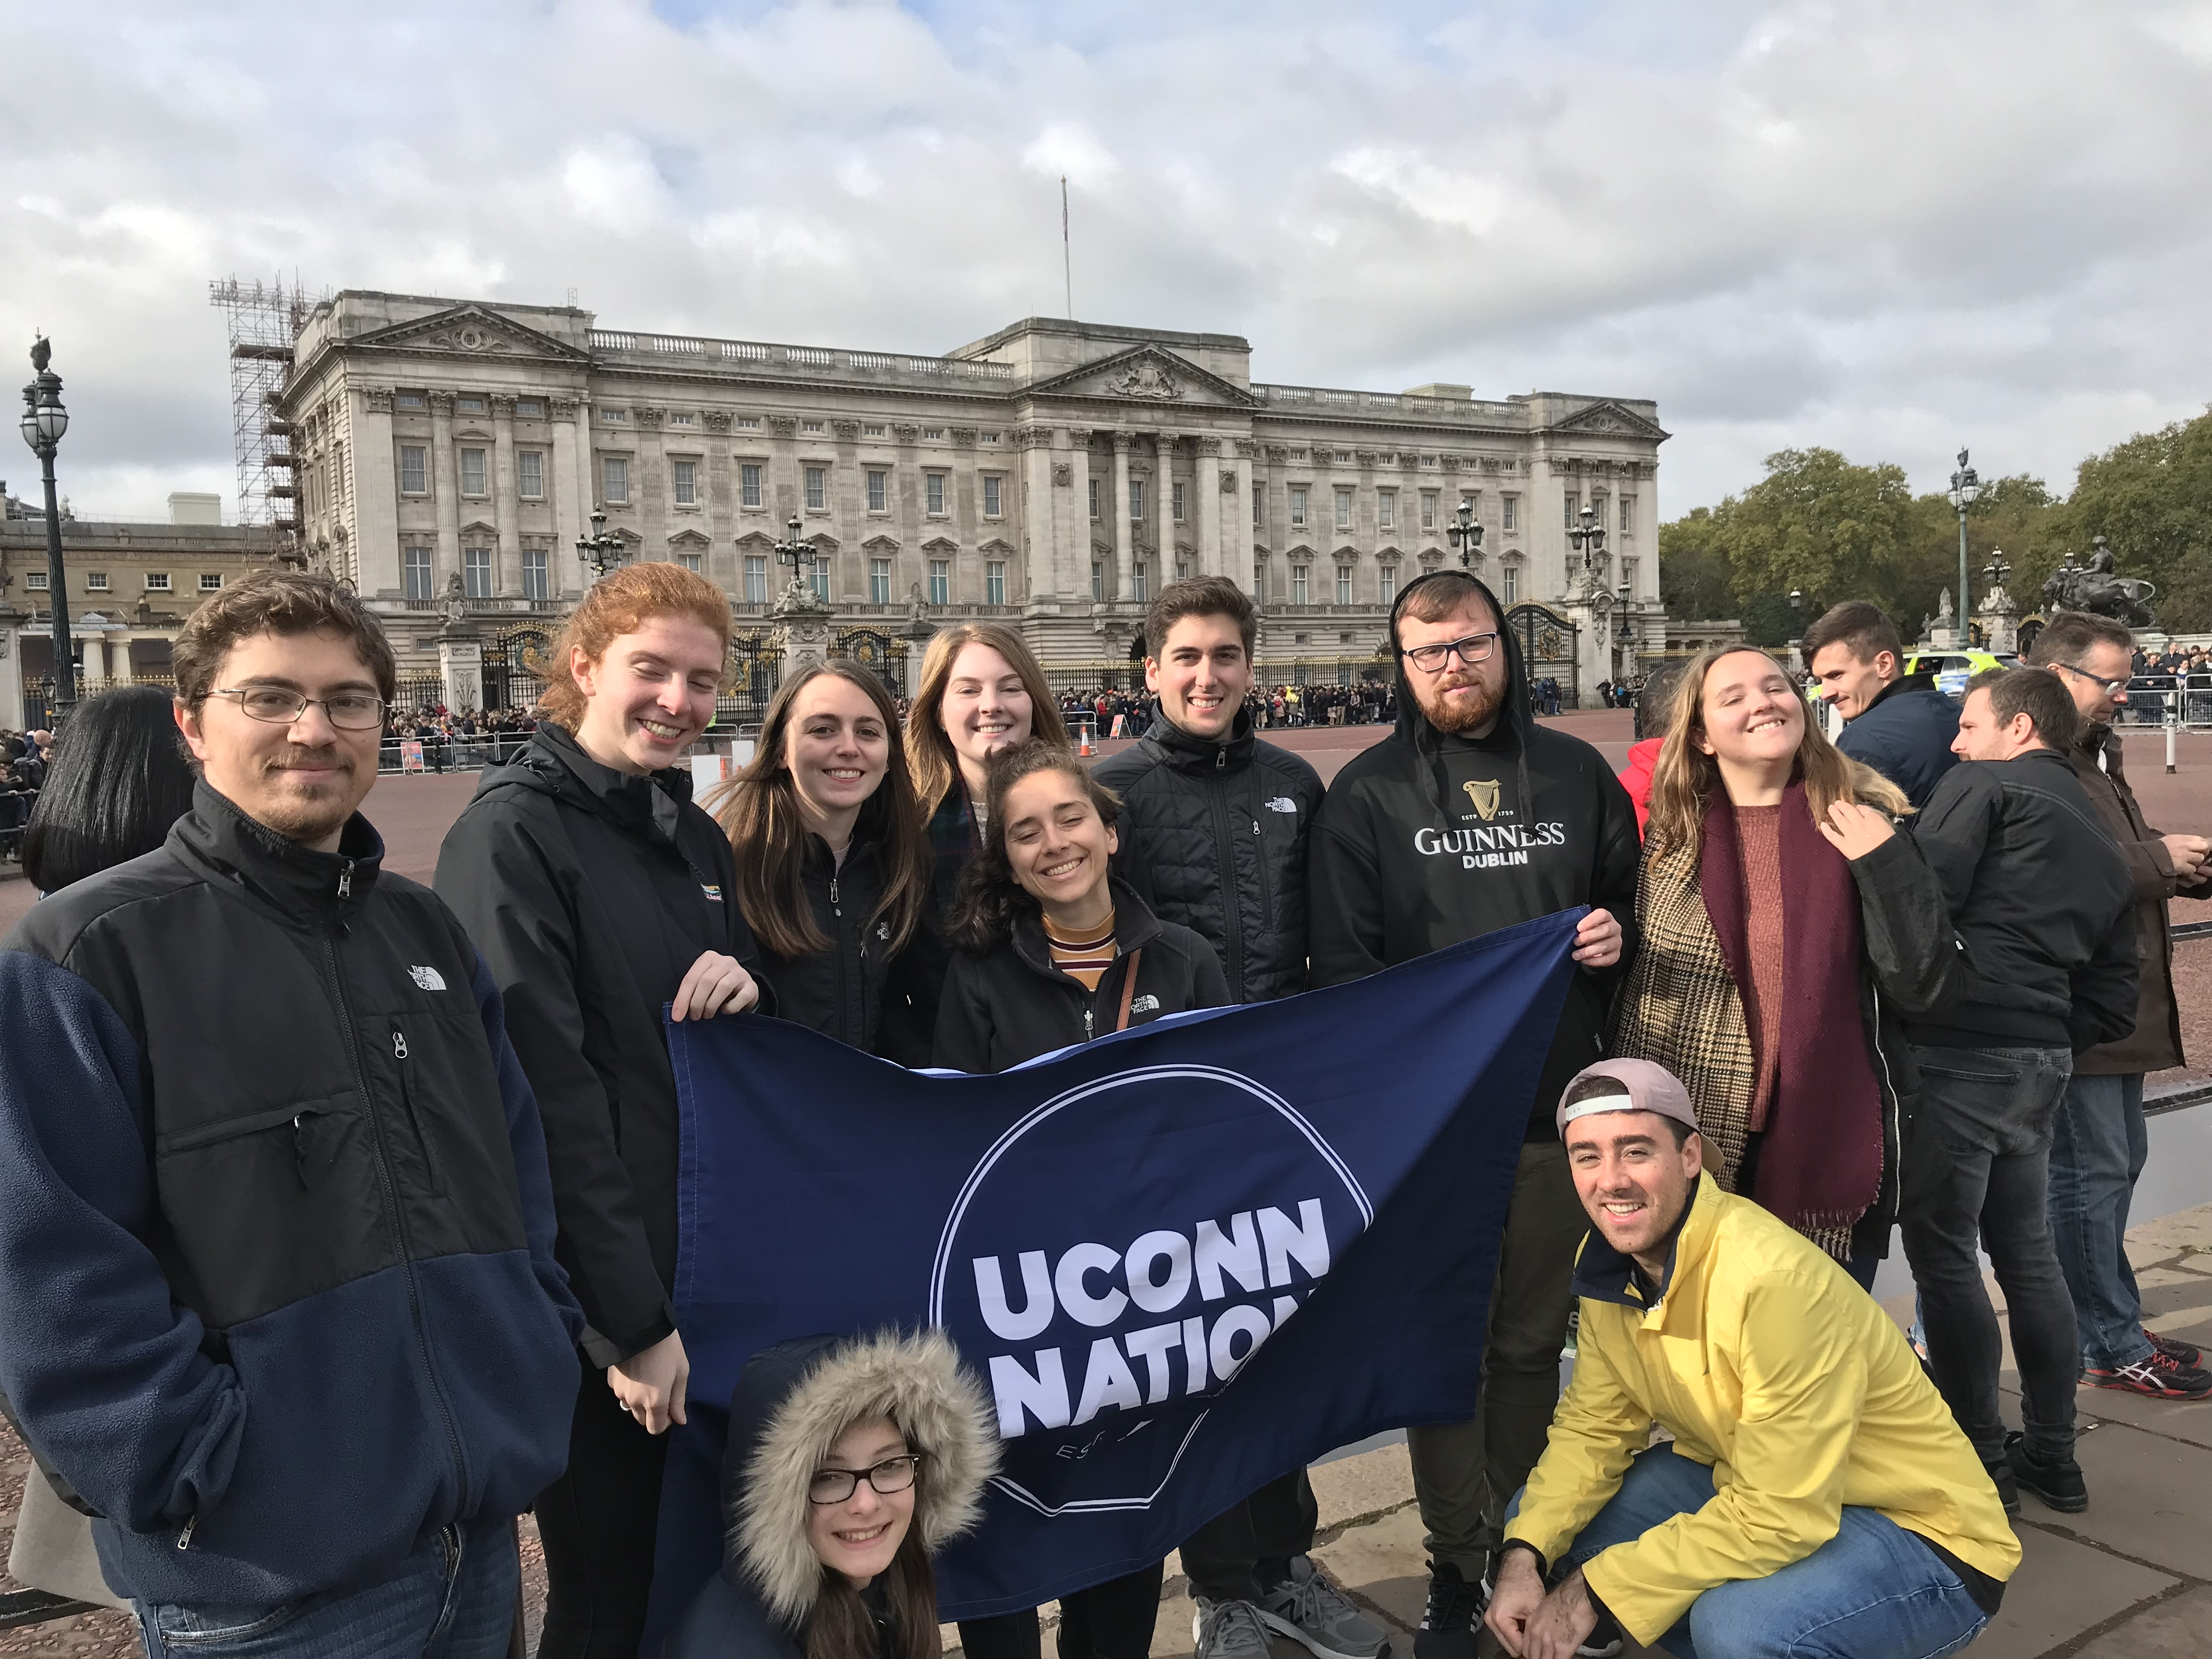 College students gather in front of Buckingham Palace in London.